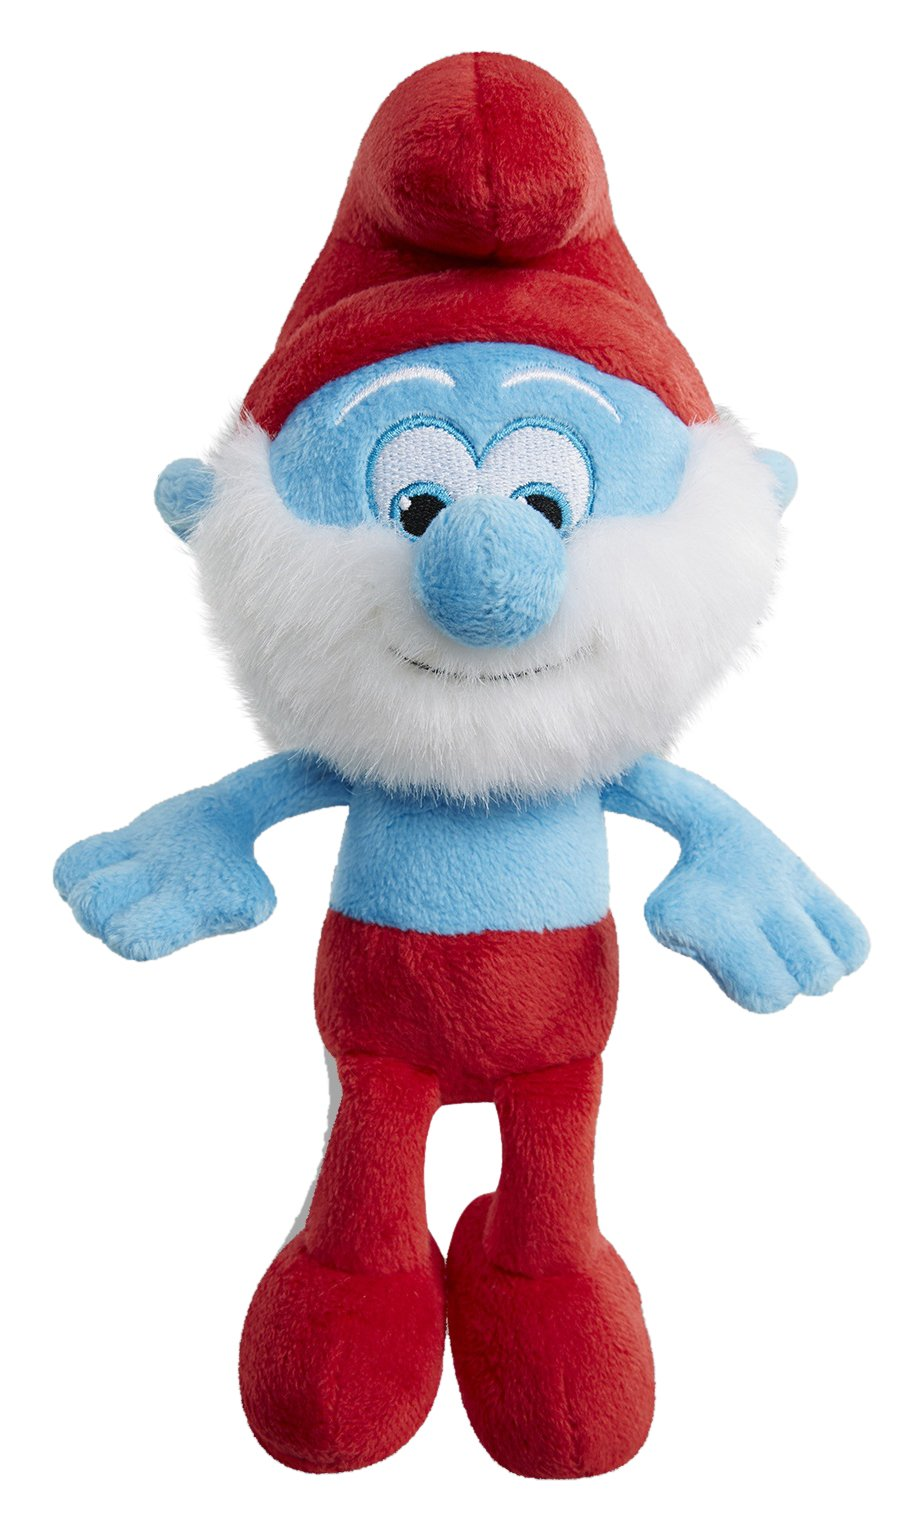 Smurfs The Lost Village Papa Smurf Bean Bag, 8'' by The Smurfs